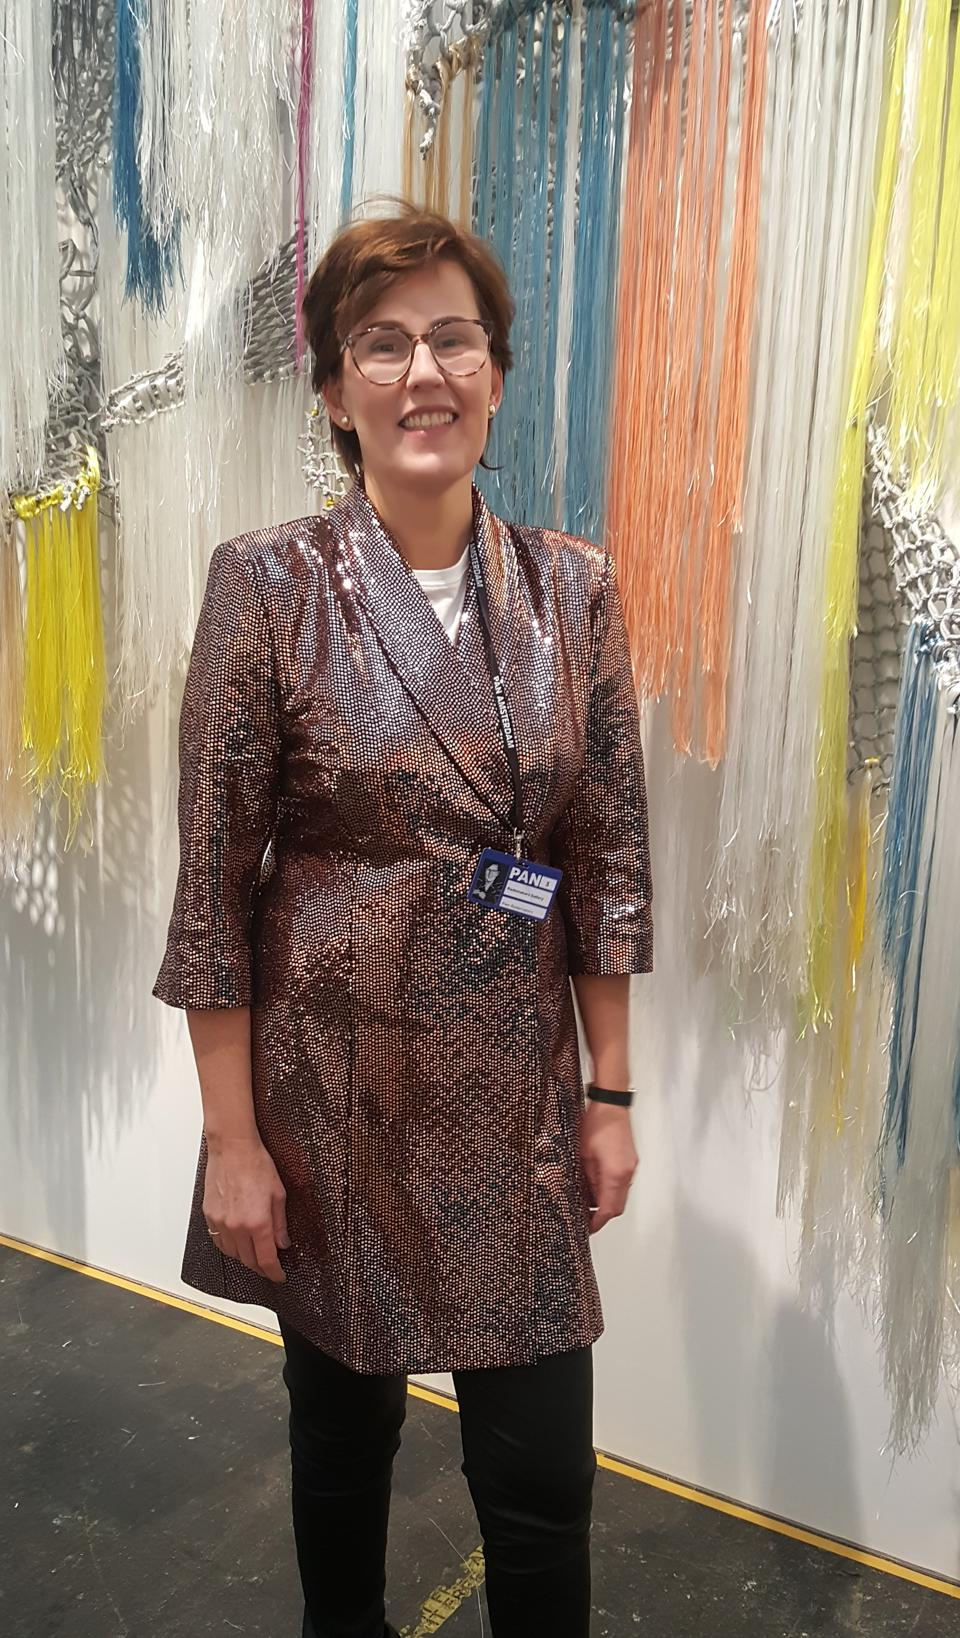 Amsterdam gallery owner and curator Pien Rademakers